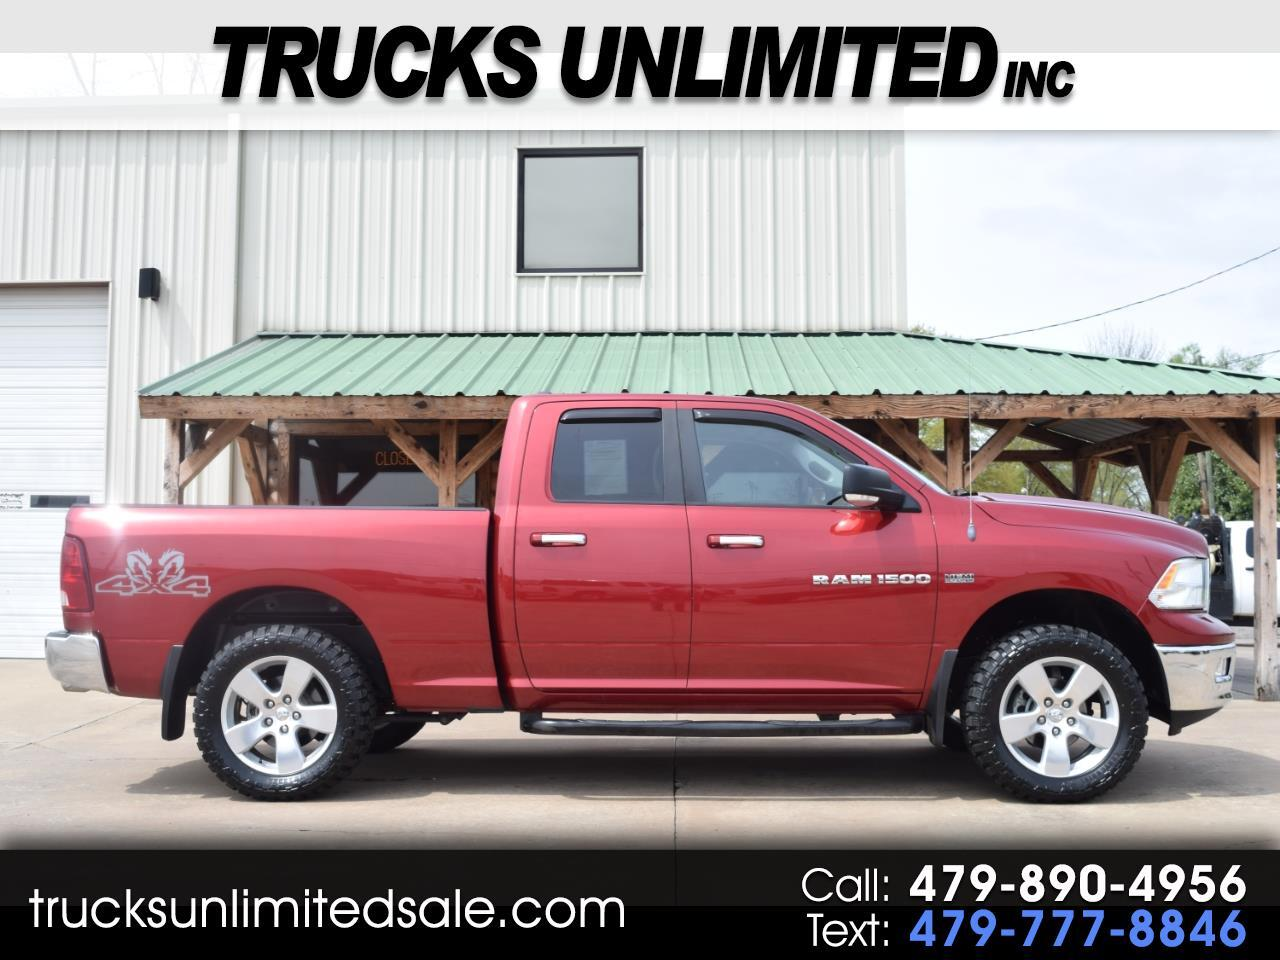 2012 Dodge Ram Pickup 1500 Big Horn Quad Cab Short Bed 4WD